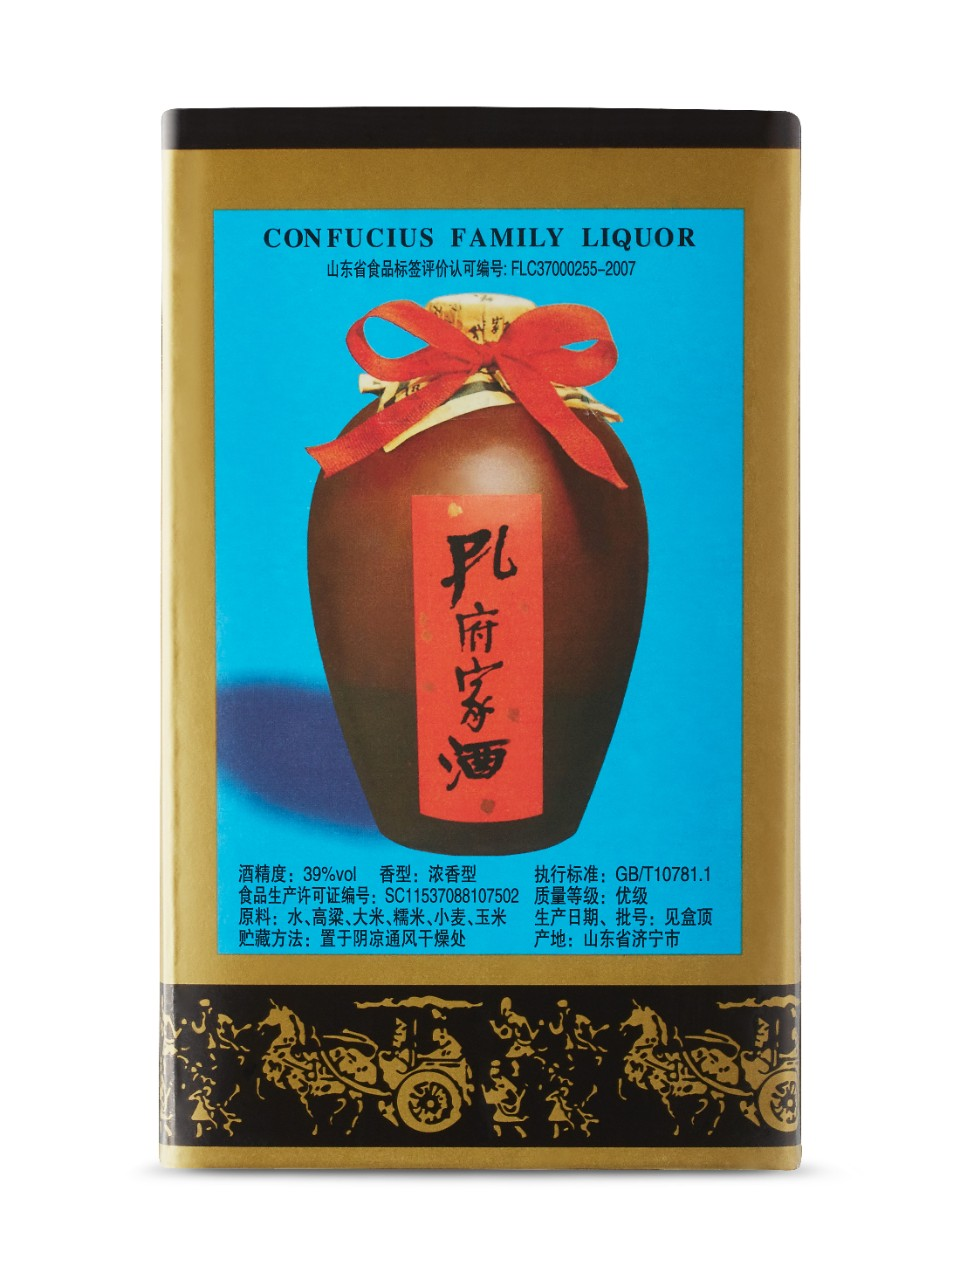 Confucius Family Liquor in Ceramic Bottle